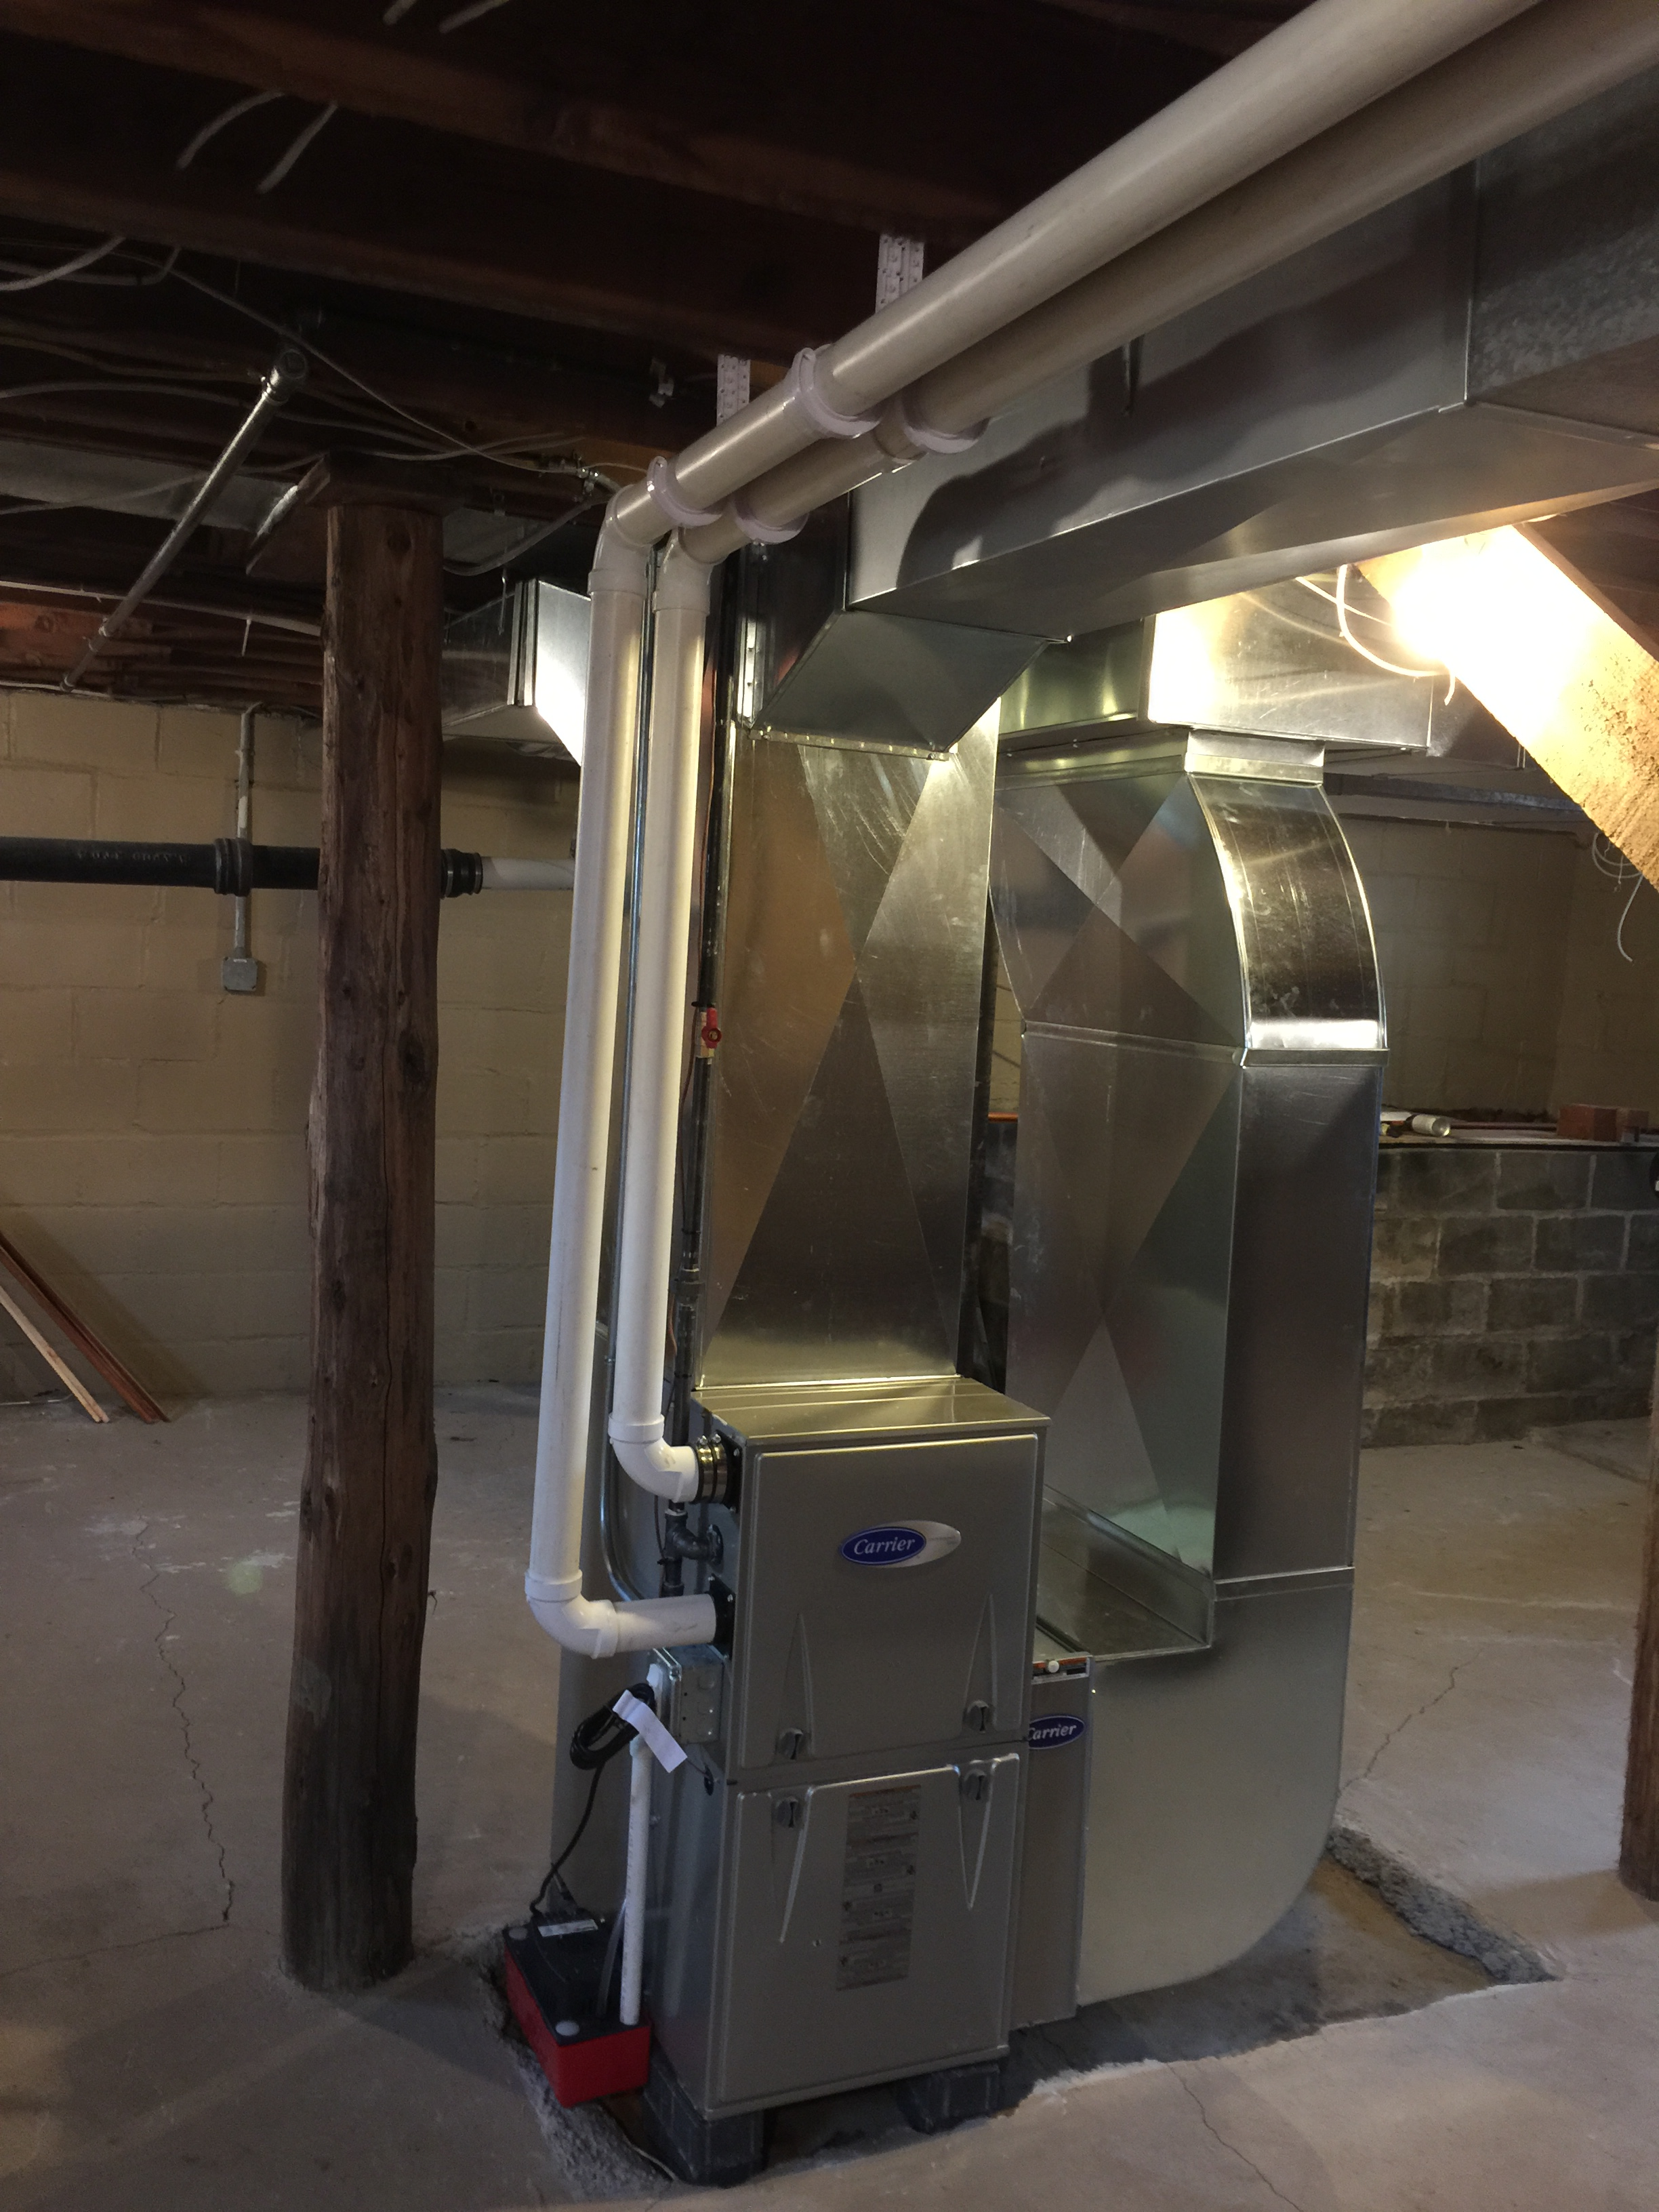 Carrier Furnace Infinity Two Stage 96% Furnace Installation